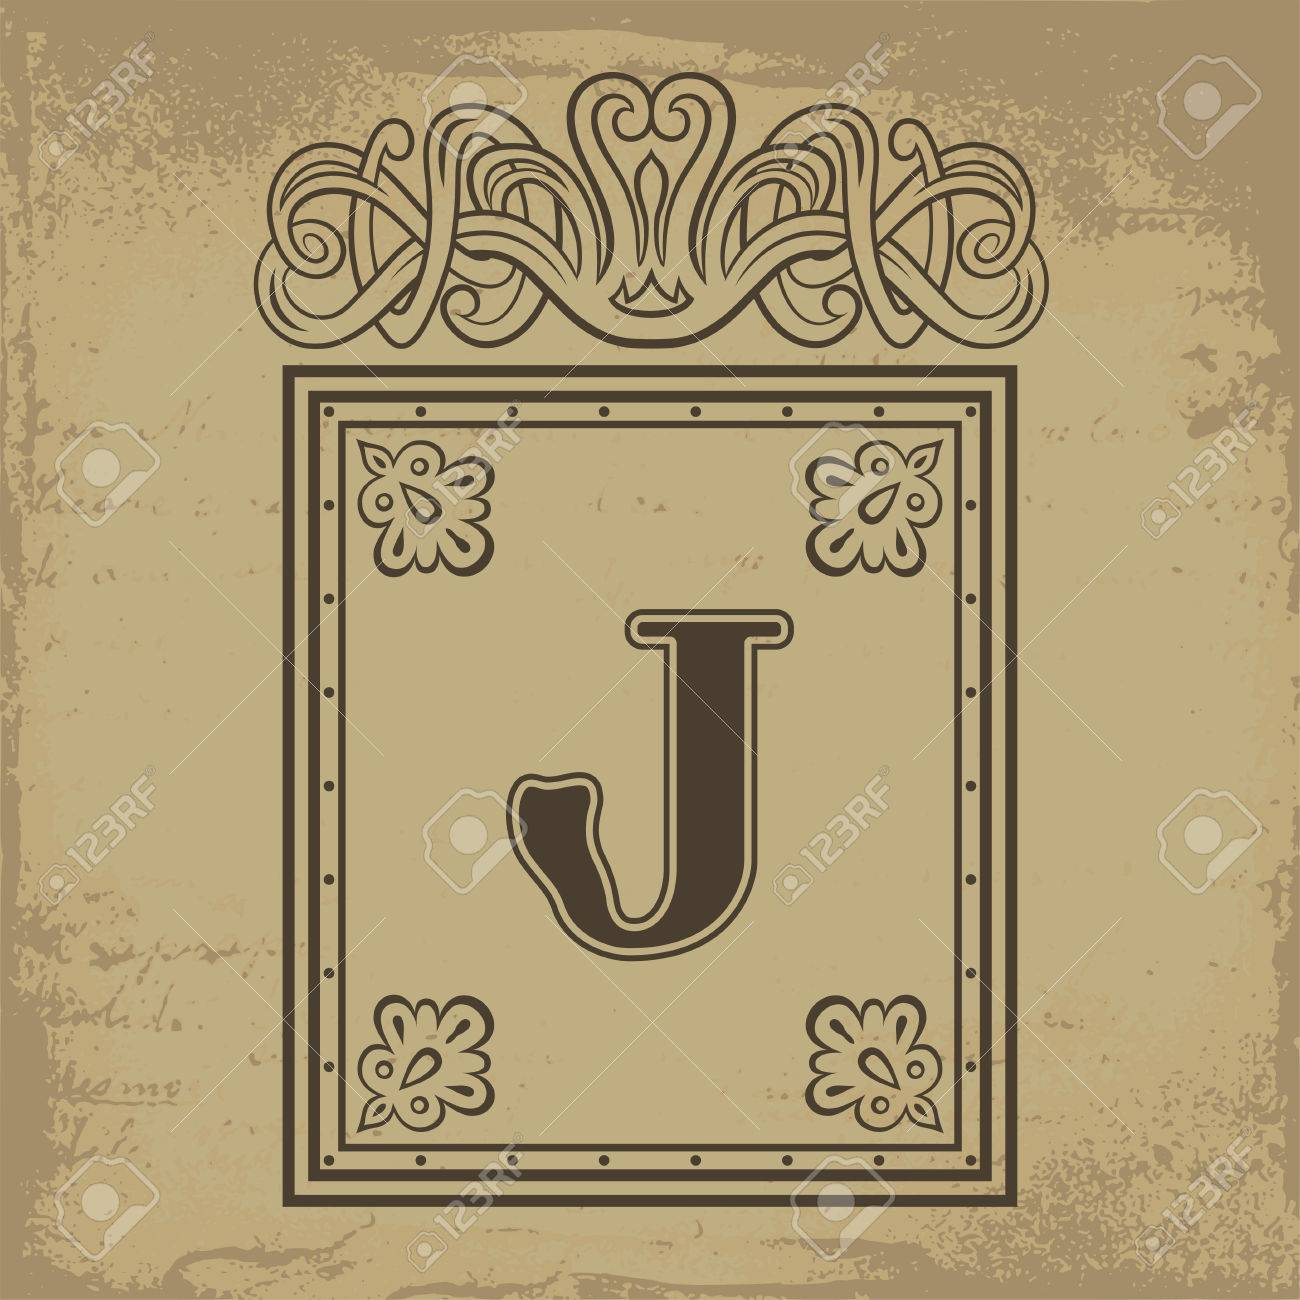 Capital Letter J In Old Russian Style Vector Illustration Royalty